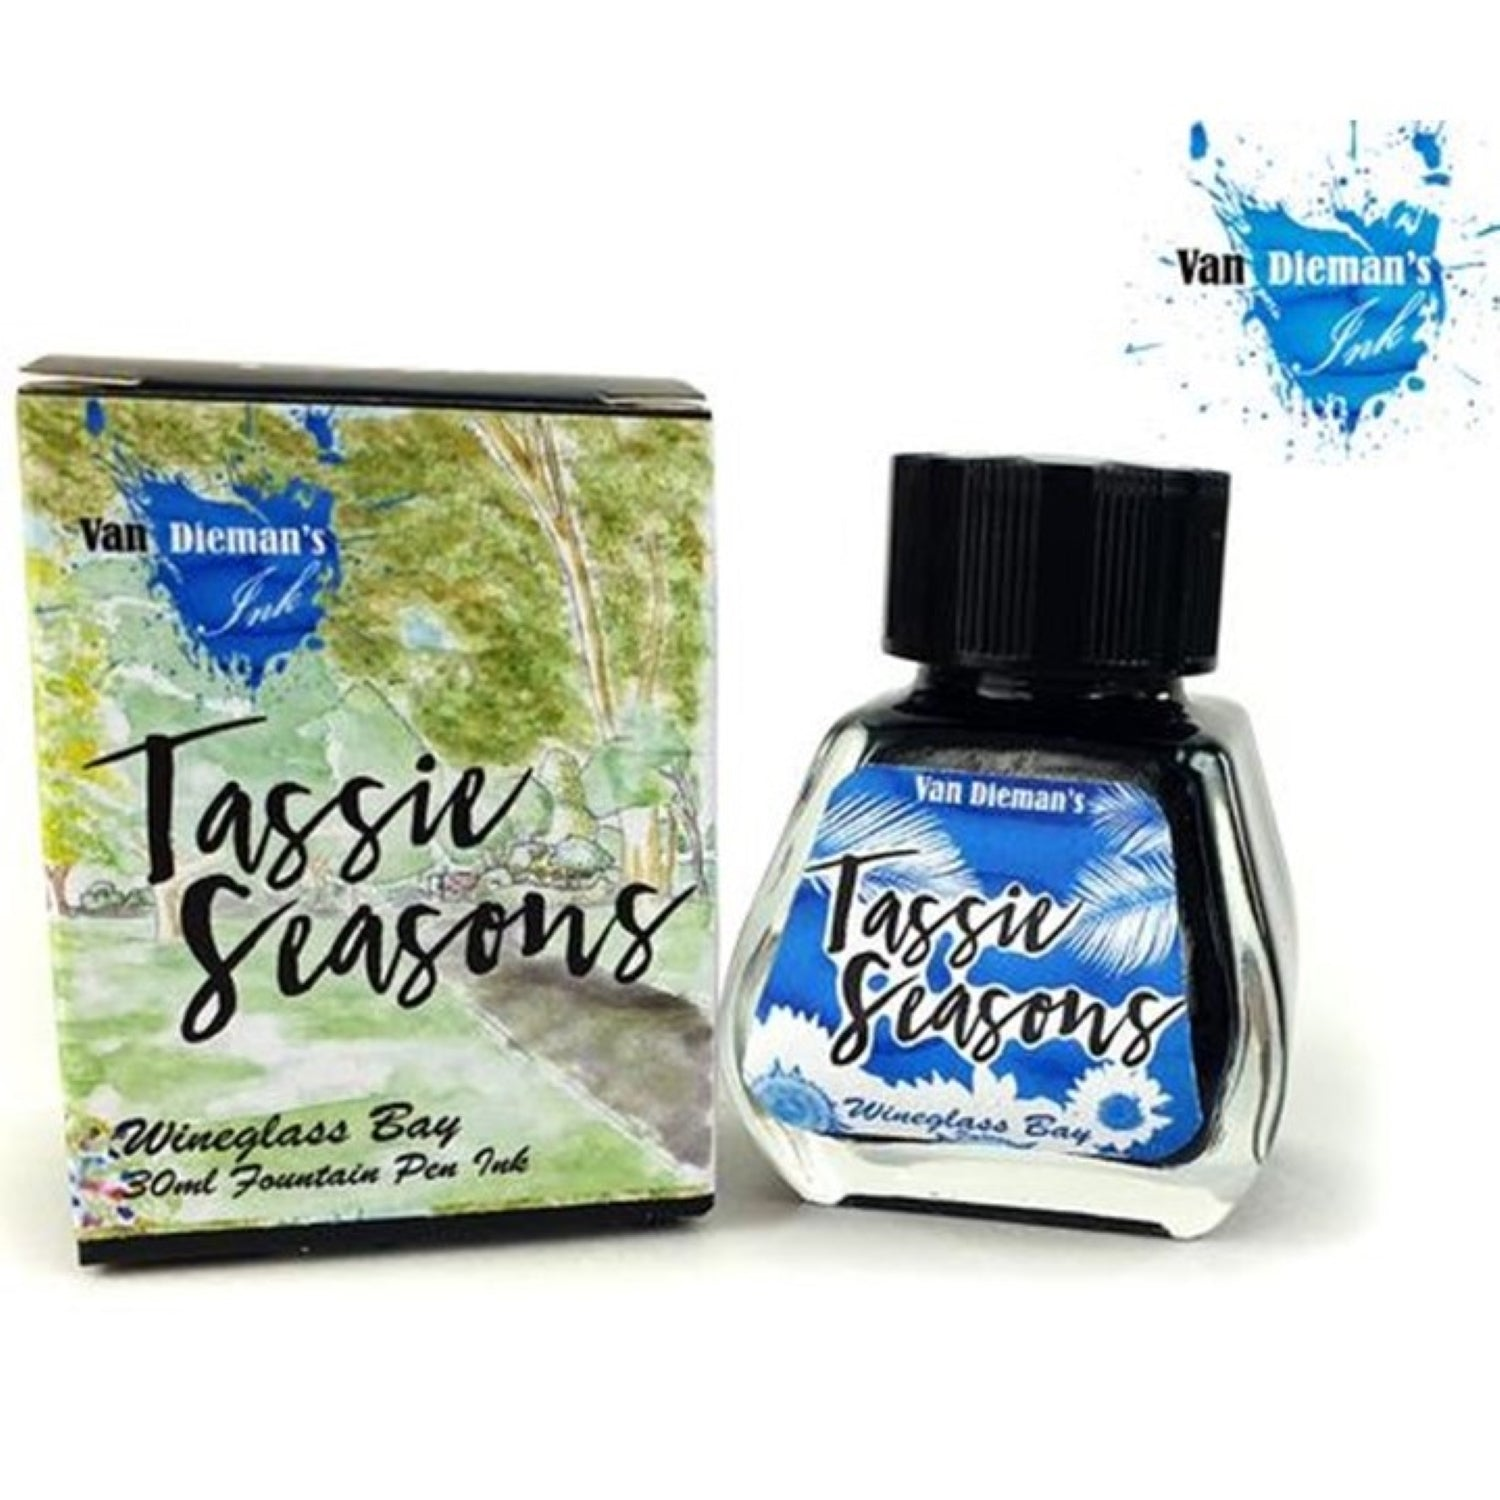 Van Diemans Tassie Seasons (Summer) Wineglass Bay Ink 30ml